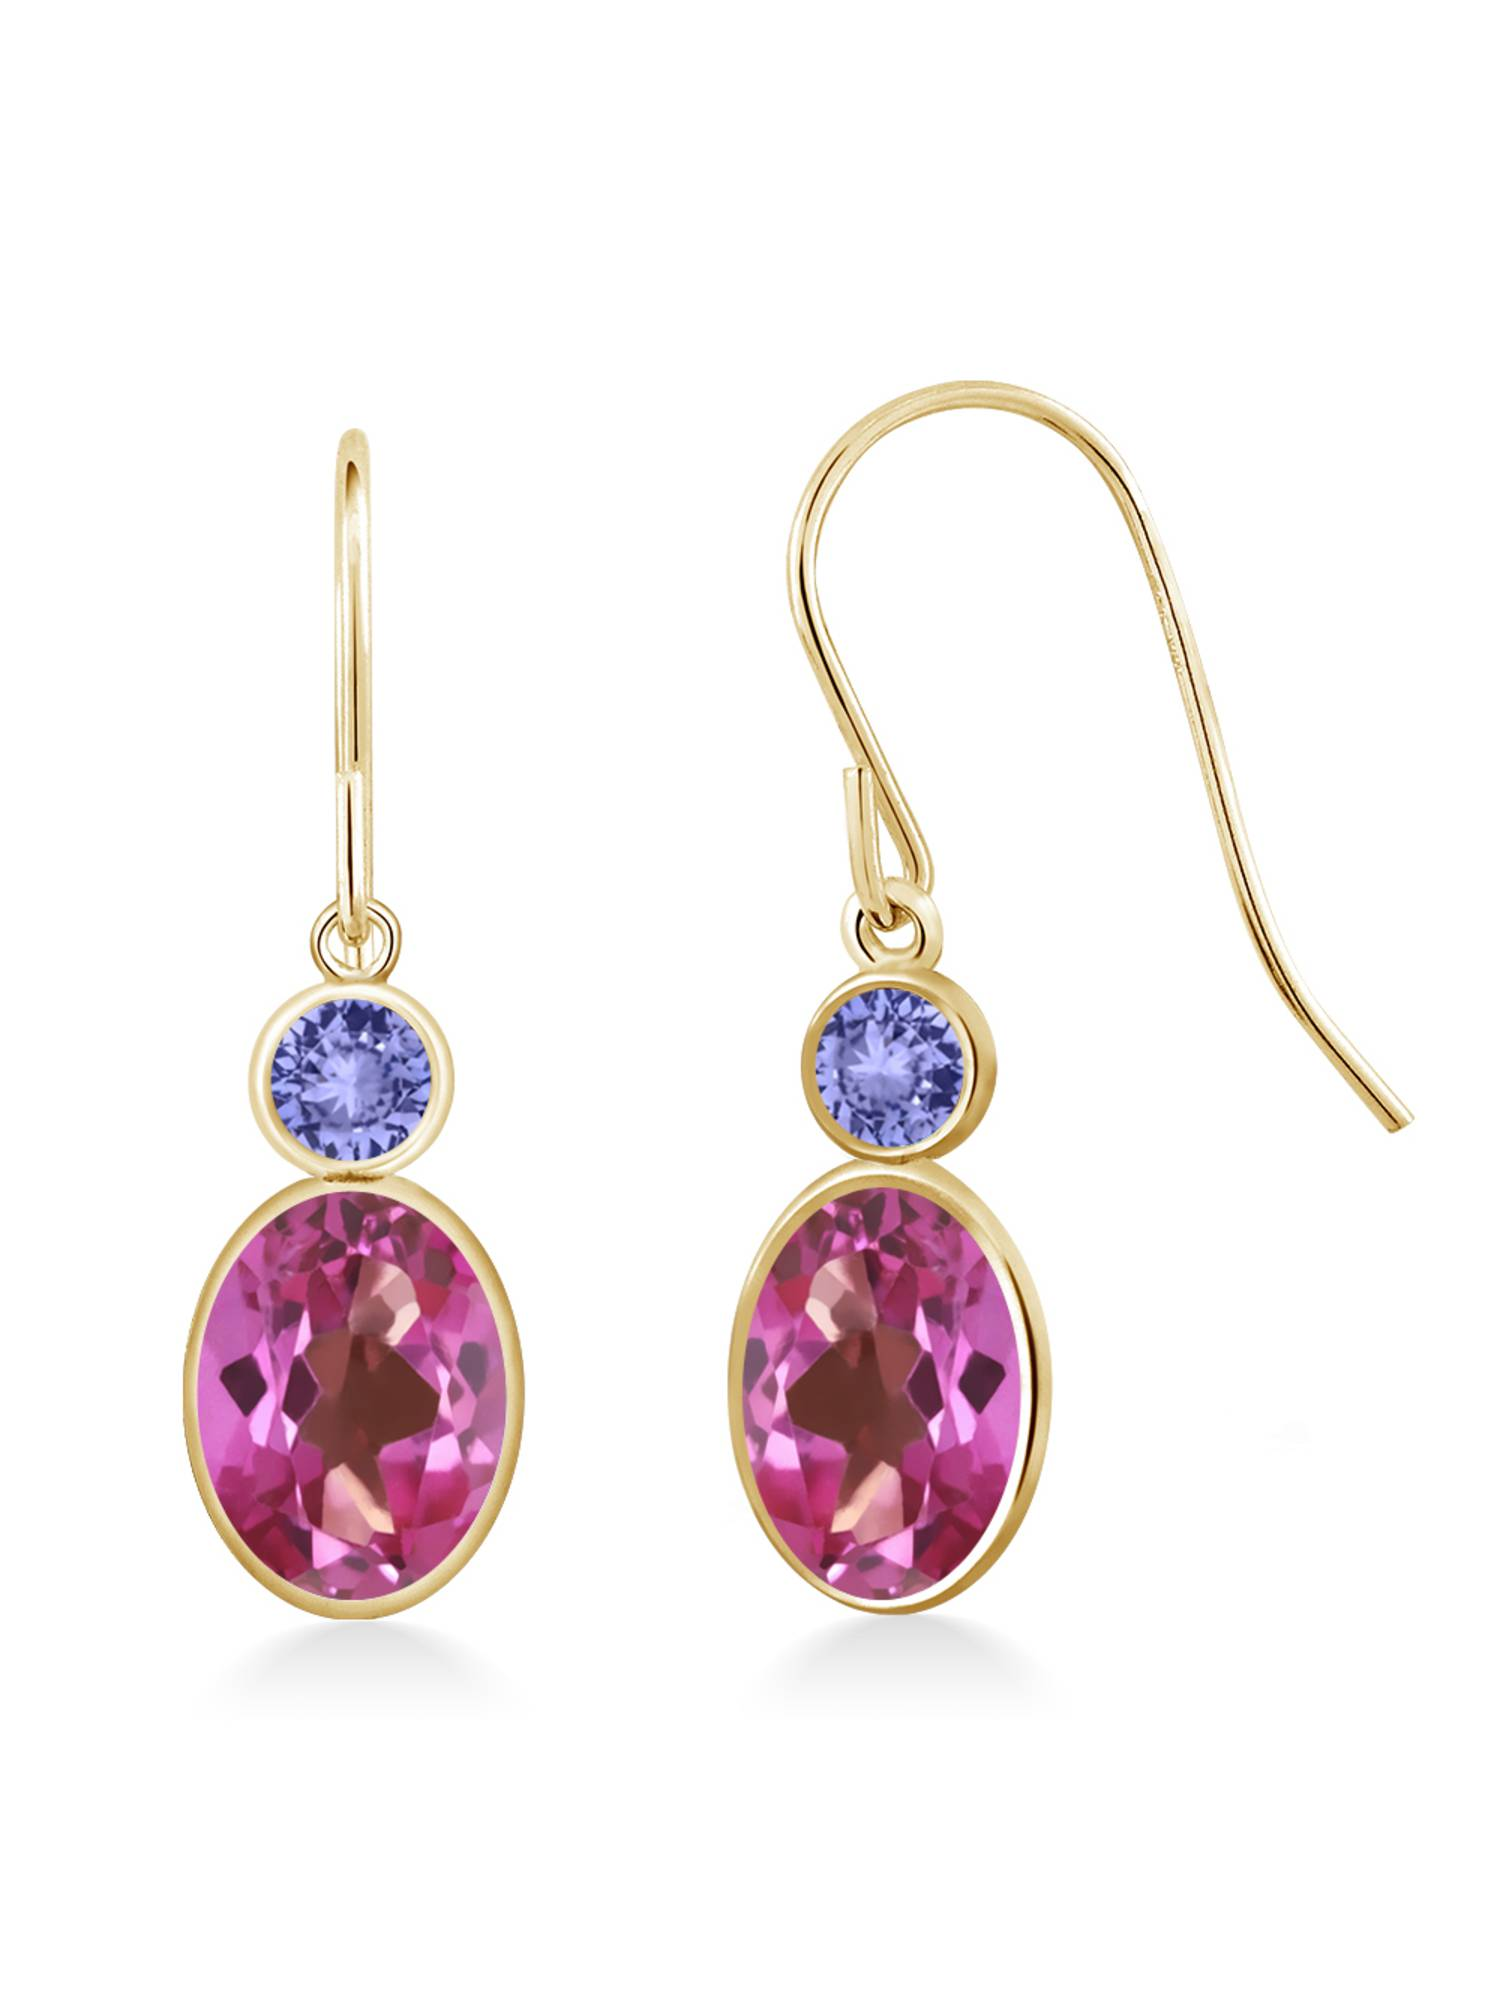 2.14 Ct Oval Pink Mystic Topaz Blue Tanzanite 14K Yellow Gold Earrings by